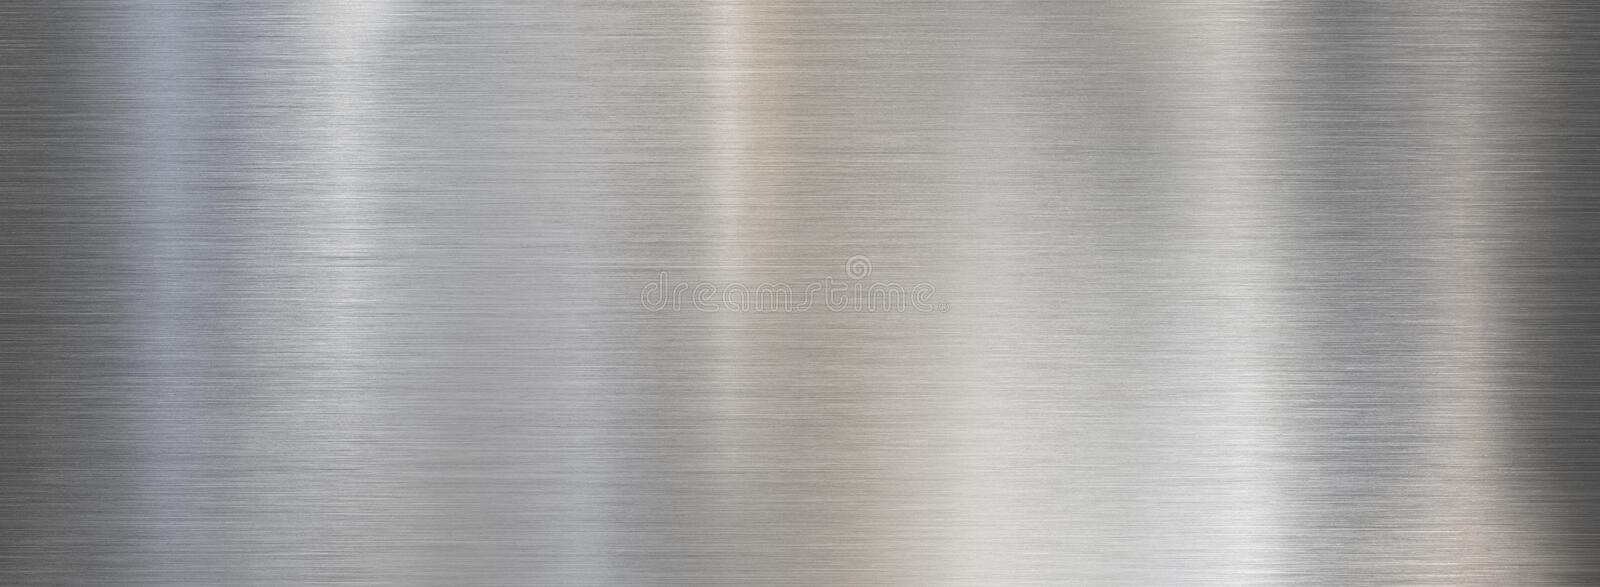 Fine brushed wide metal steel or aluminum plate stock photography